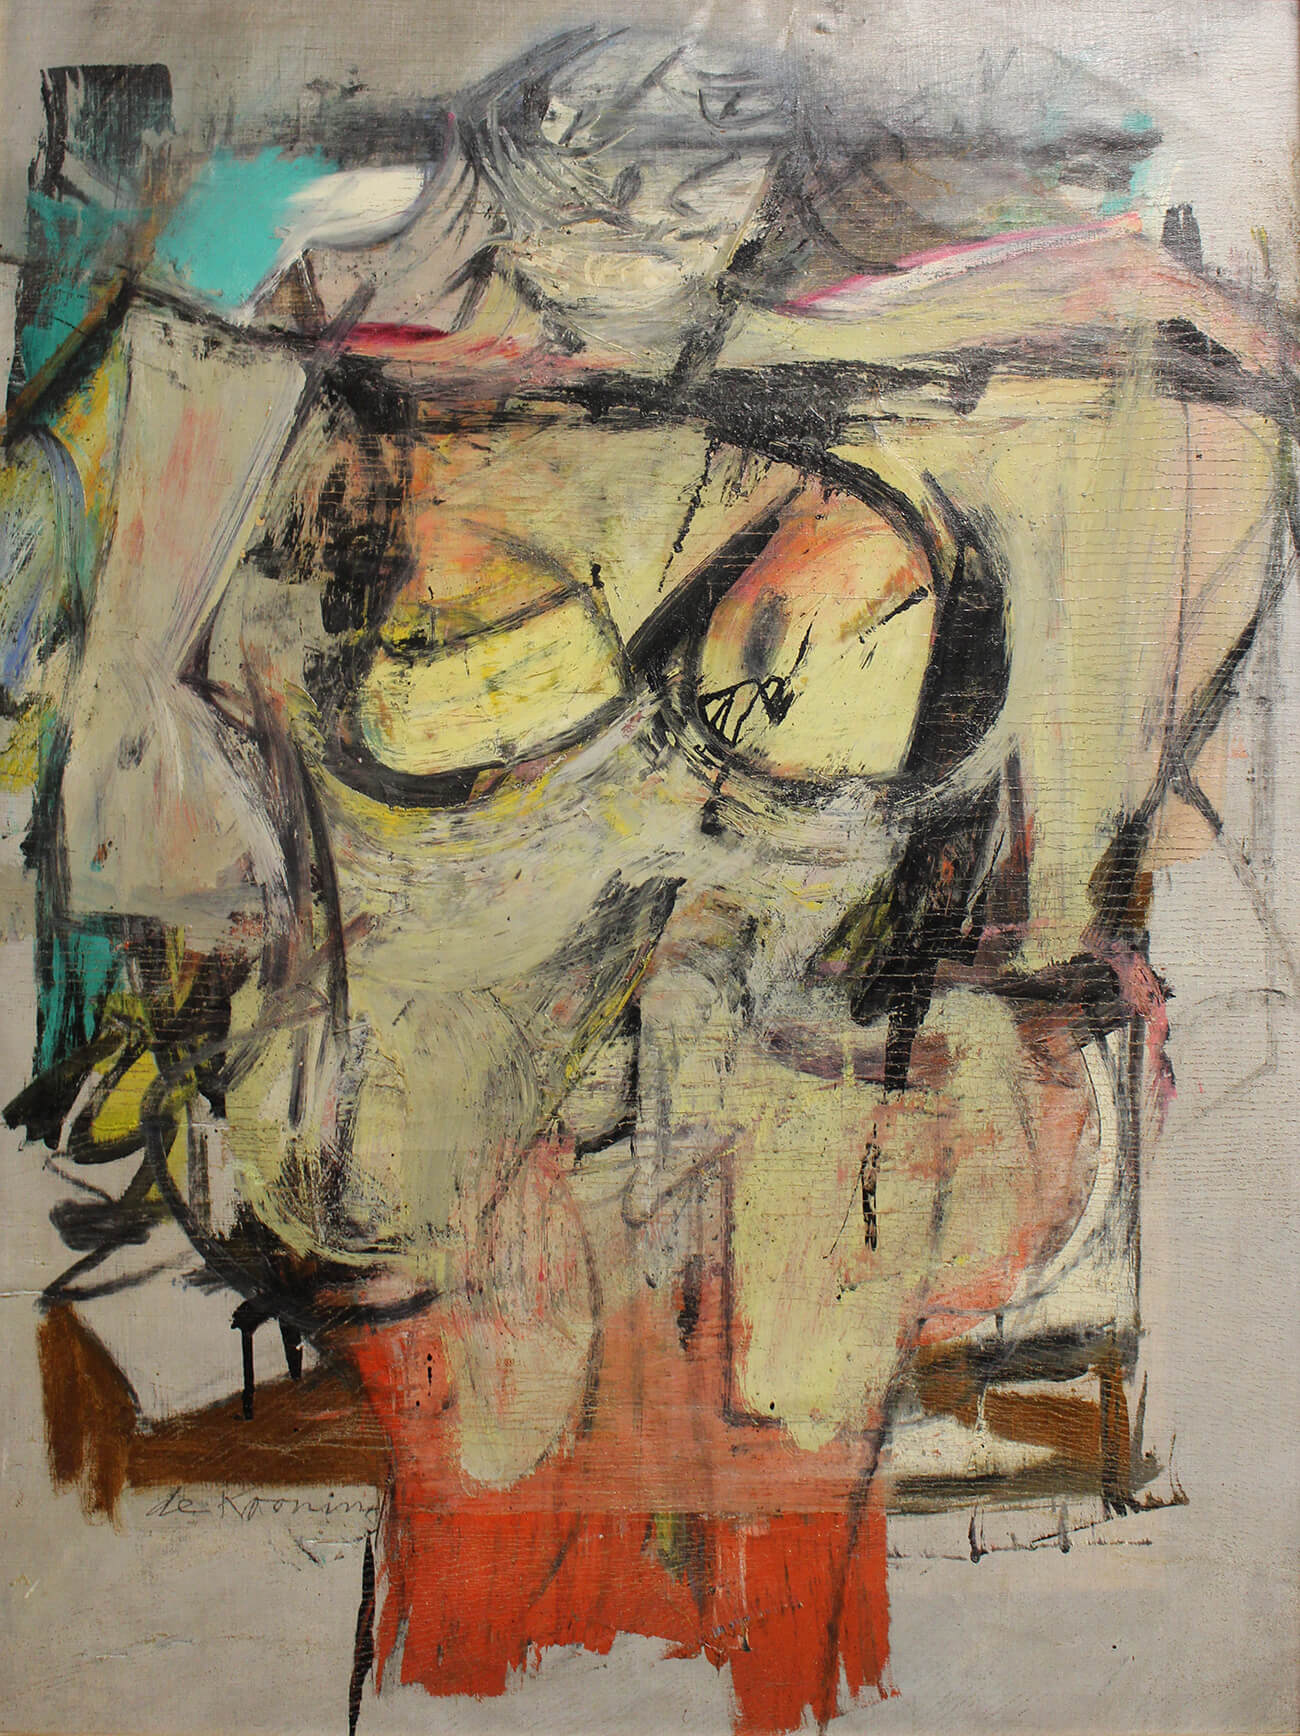 Abstract painting featuring dark outlines and colors of soft gold, turquoise, and coral. Willem de Kooning, Woman-Ochre, 1955. Oil on canvas, 30 x 40 in. Copyright 2019 The Willem de Kooning Foundation / Artists Rights Society (ARS), New York